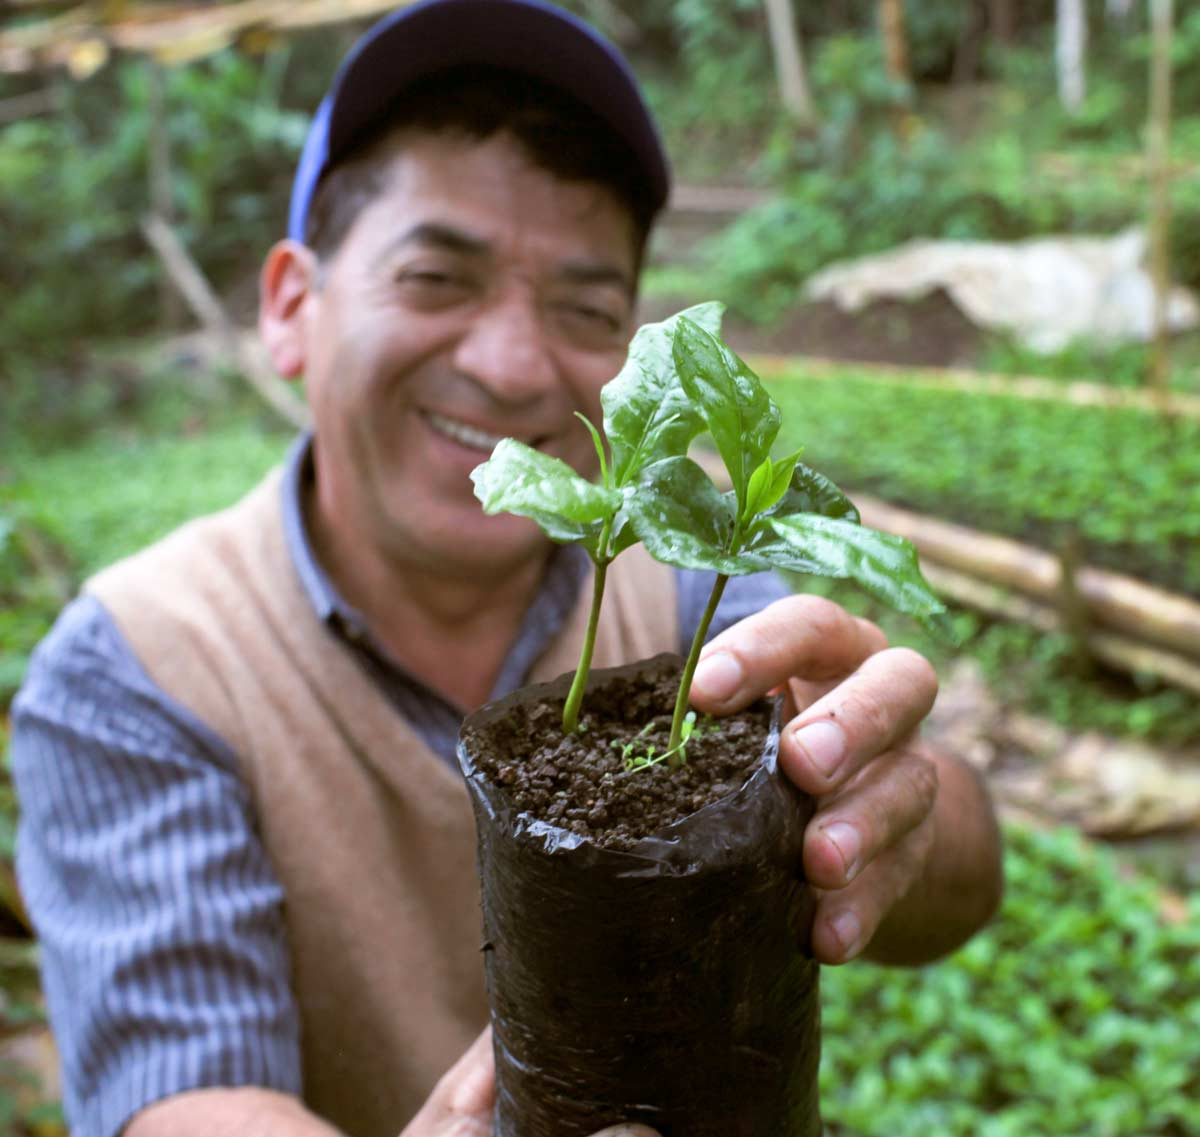 Farmer Holding an Organic Coffee Plant